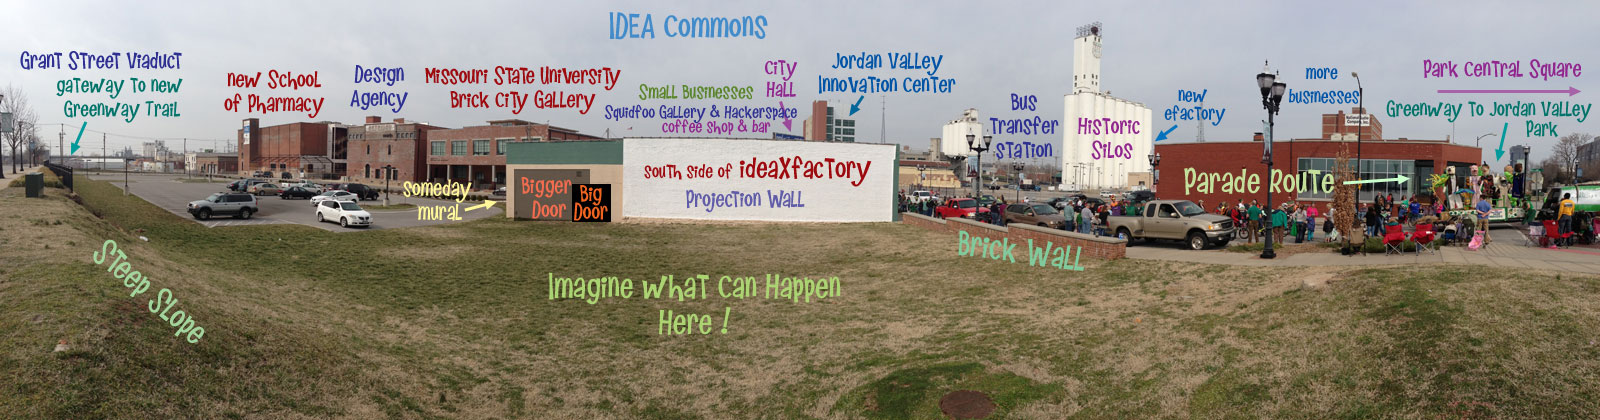 ideaXfactory in IDEA Commons panorama map